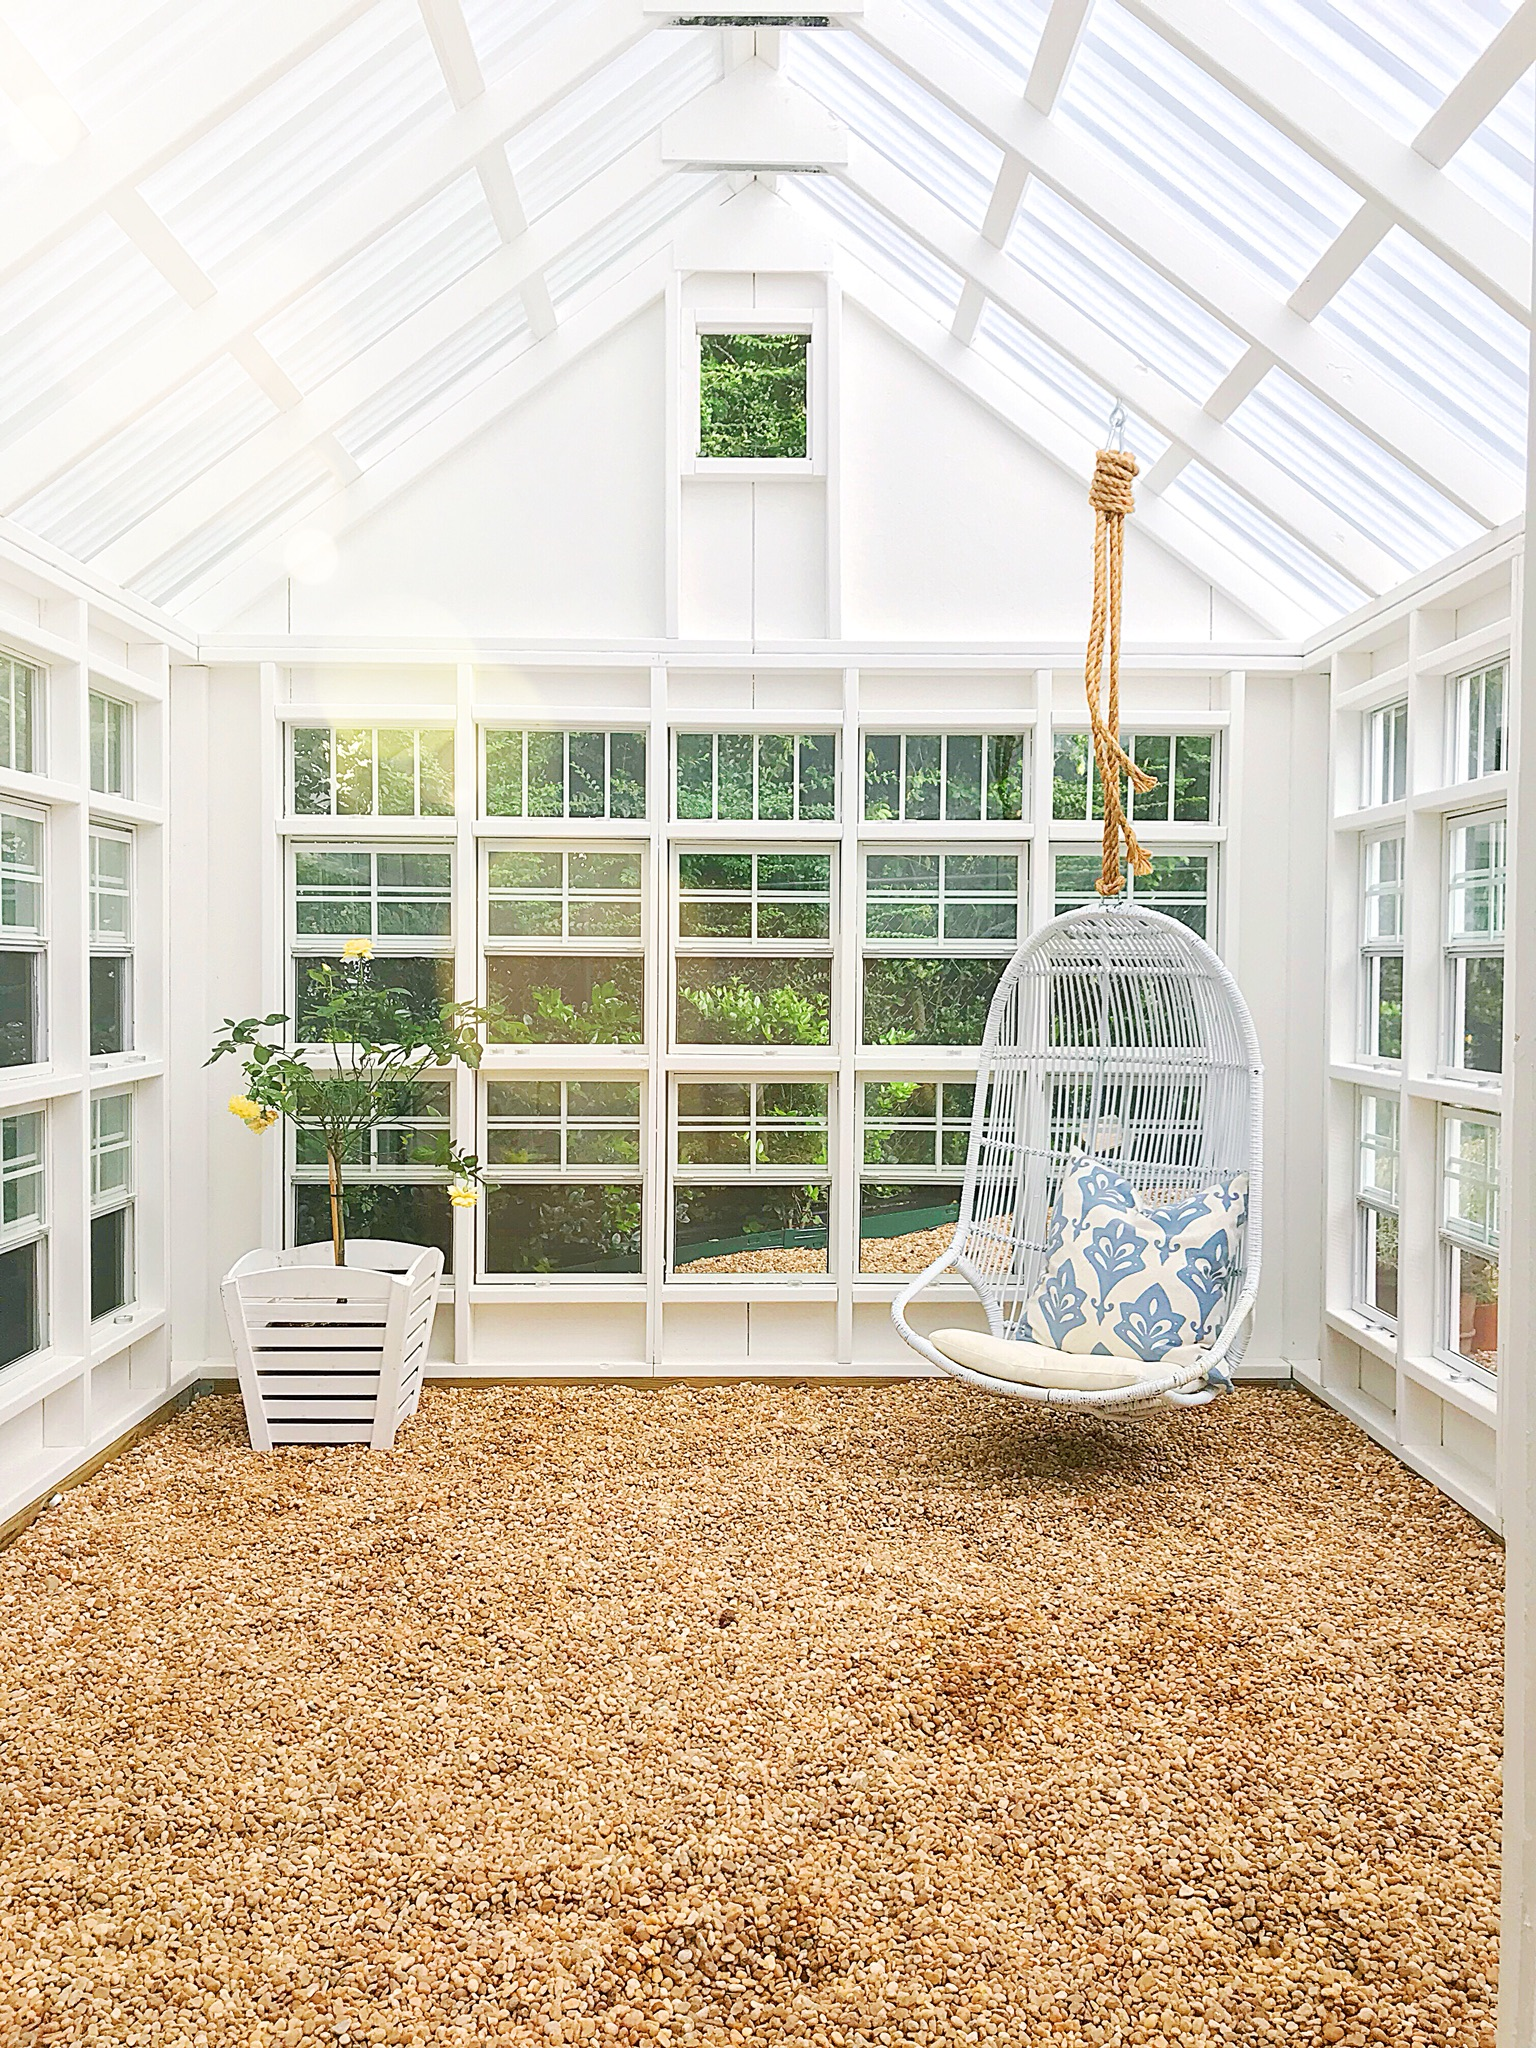 Greenhouse Kit : Found   Here   | Hanging Chair : (no longer available), similar one @ Serena & Lily